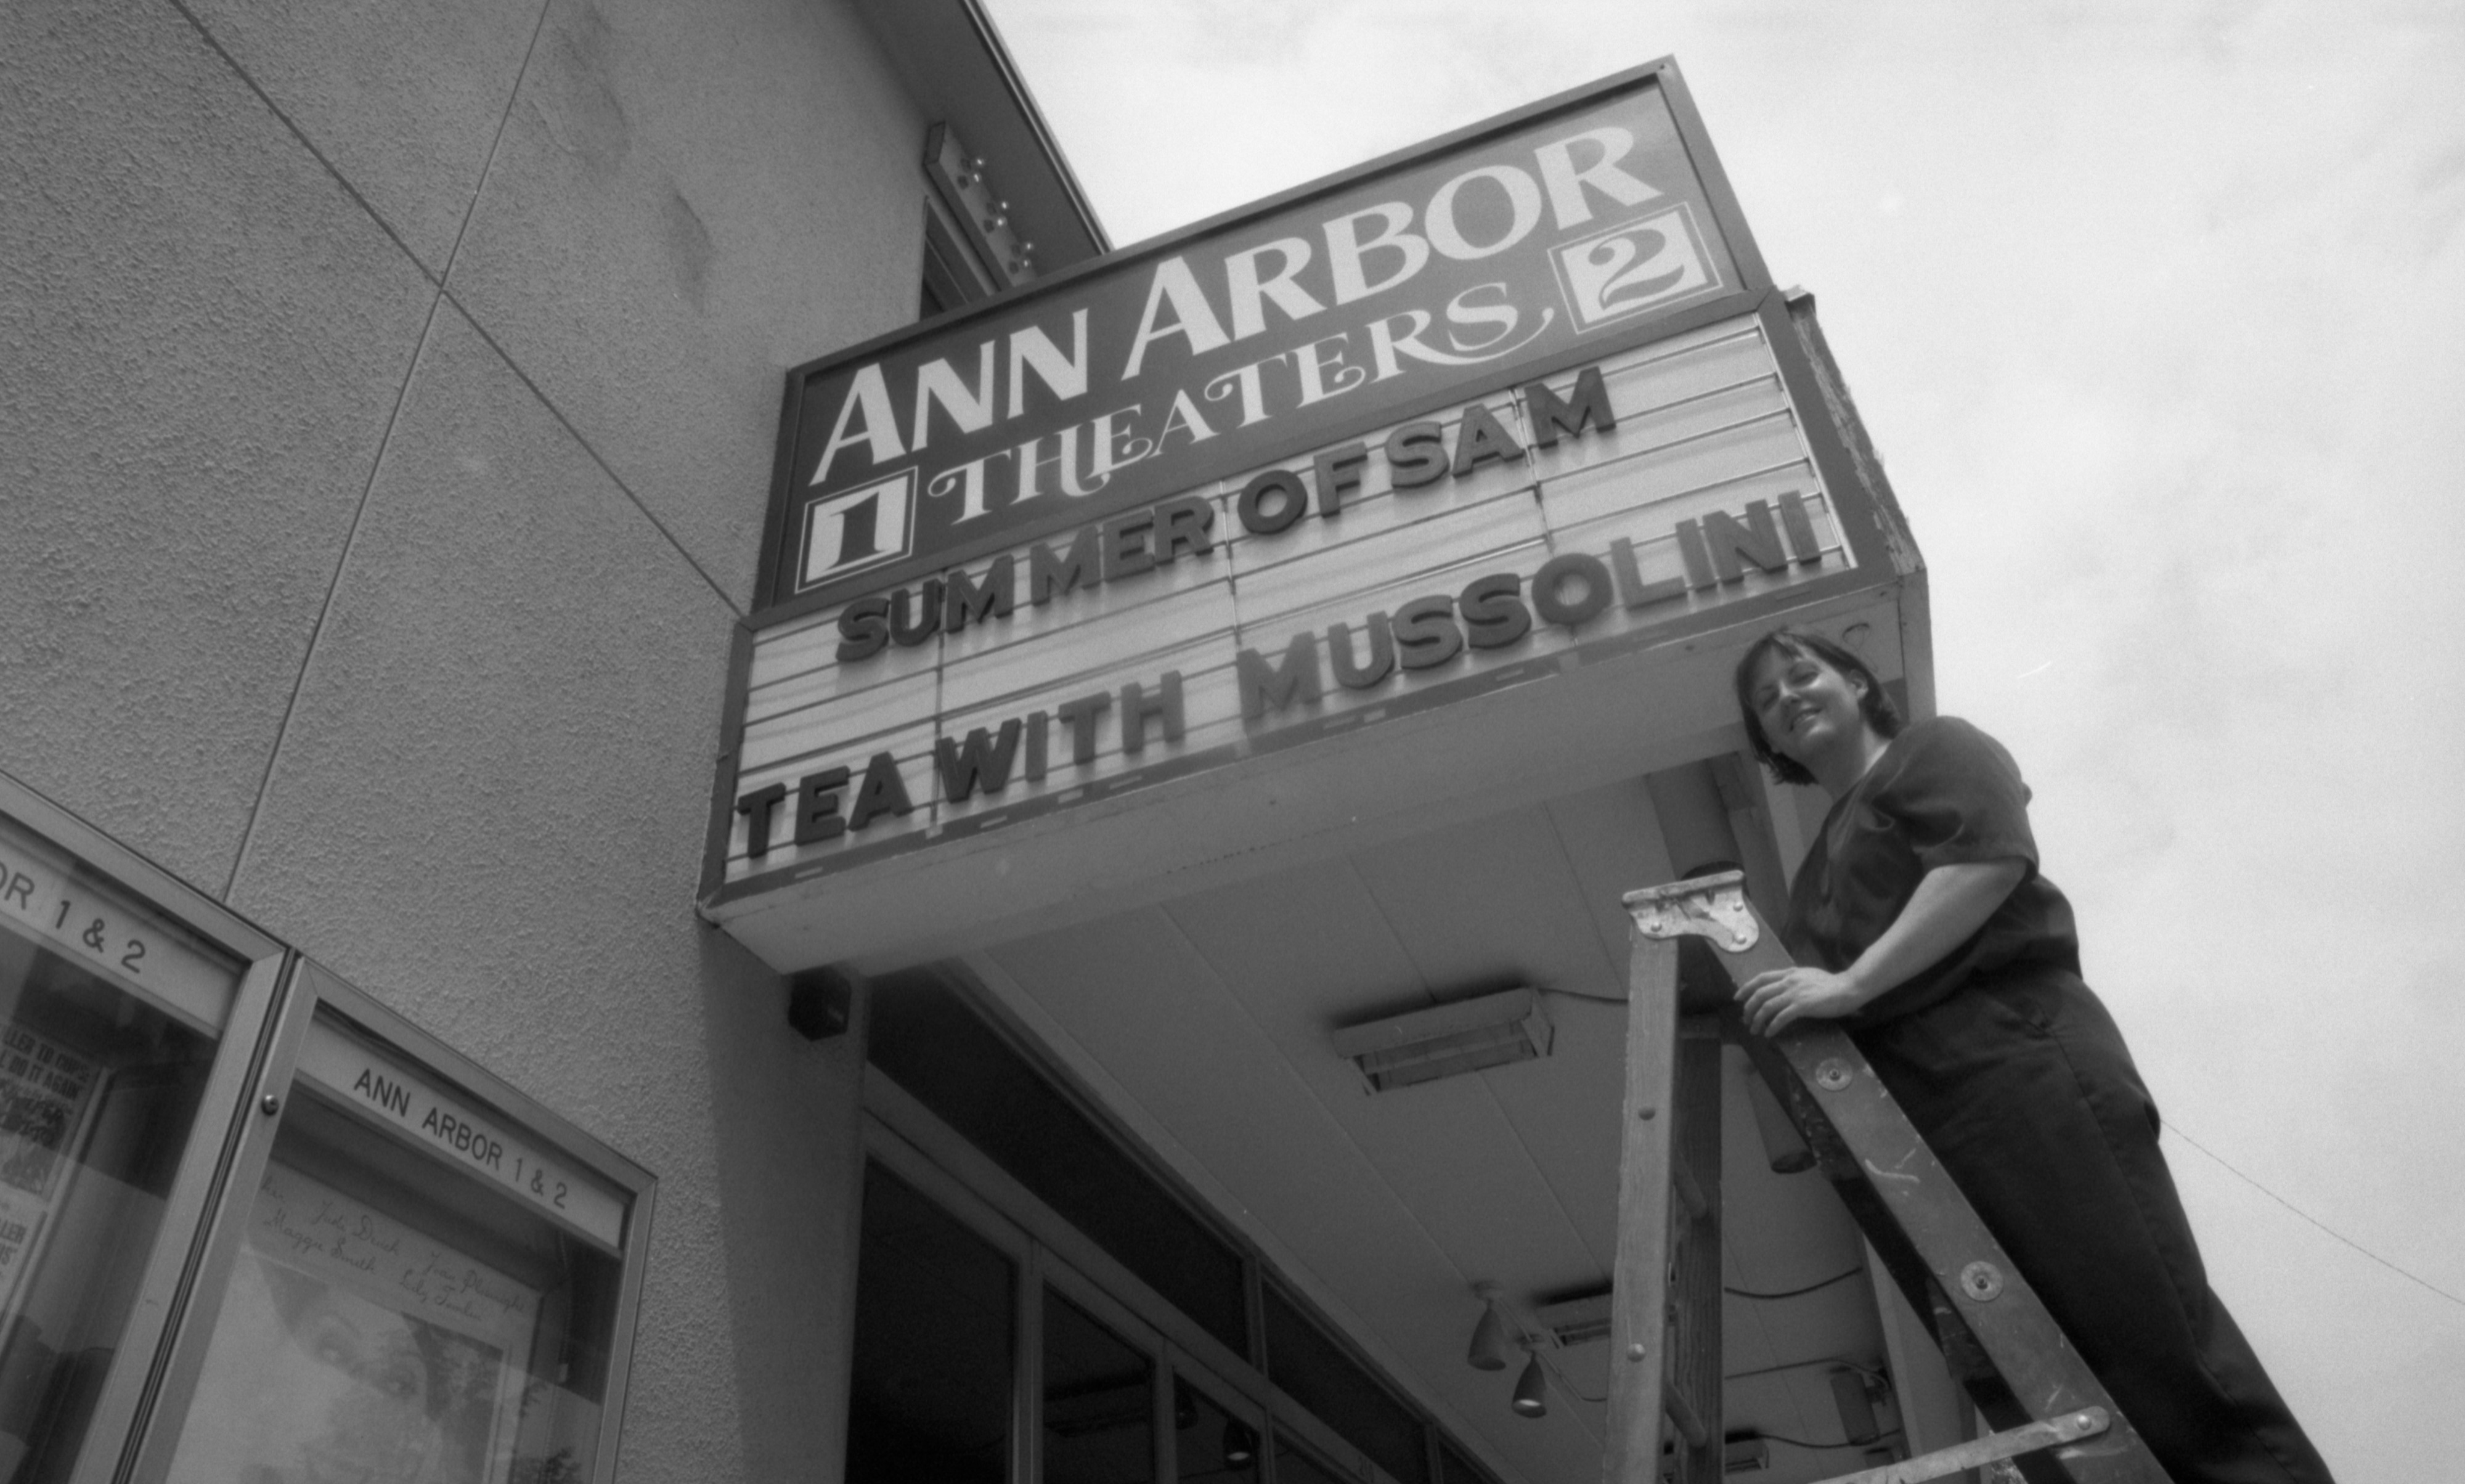 Ann Arbor Theaters 1 & 2, 210 S Fifth Ave, Manager Sue Heckenbrook In Front of Marquee, July 1999 image